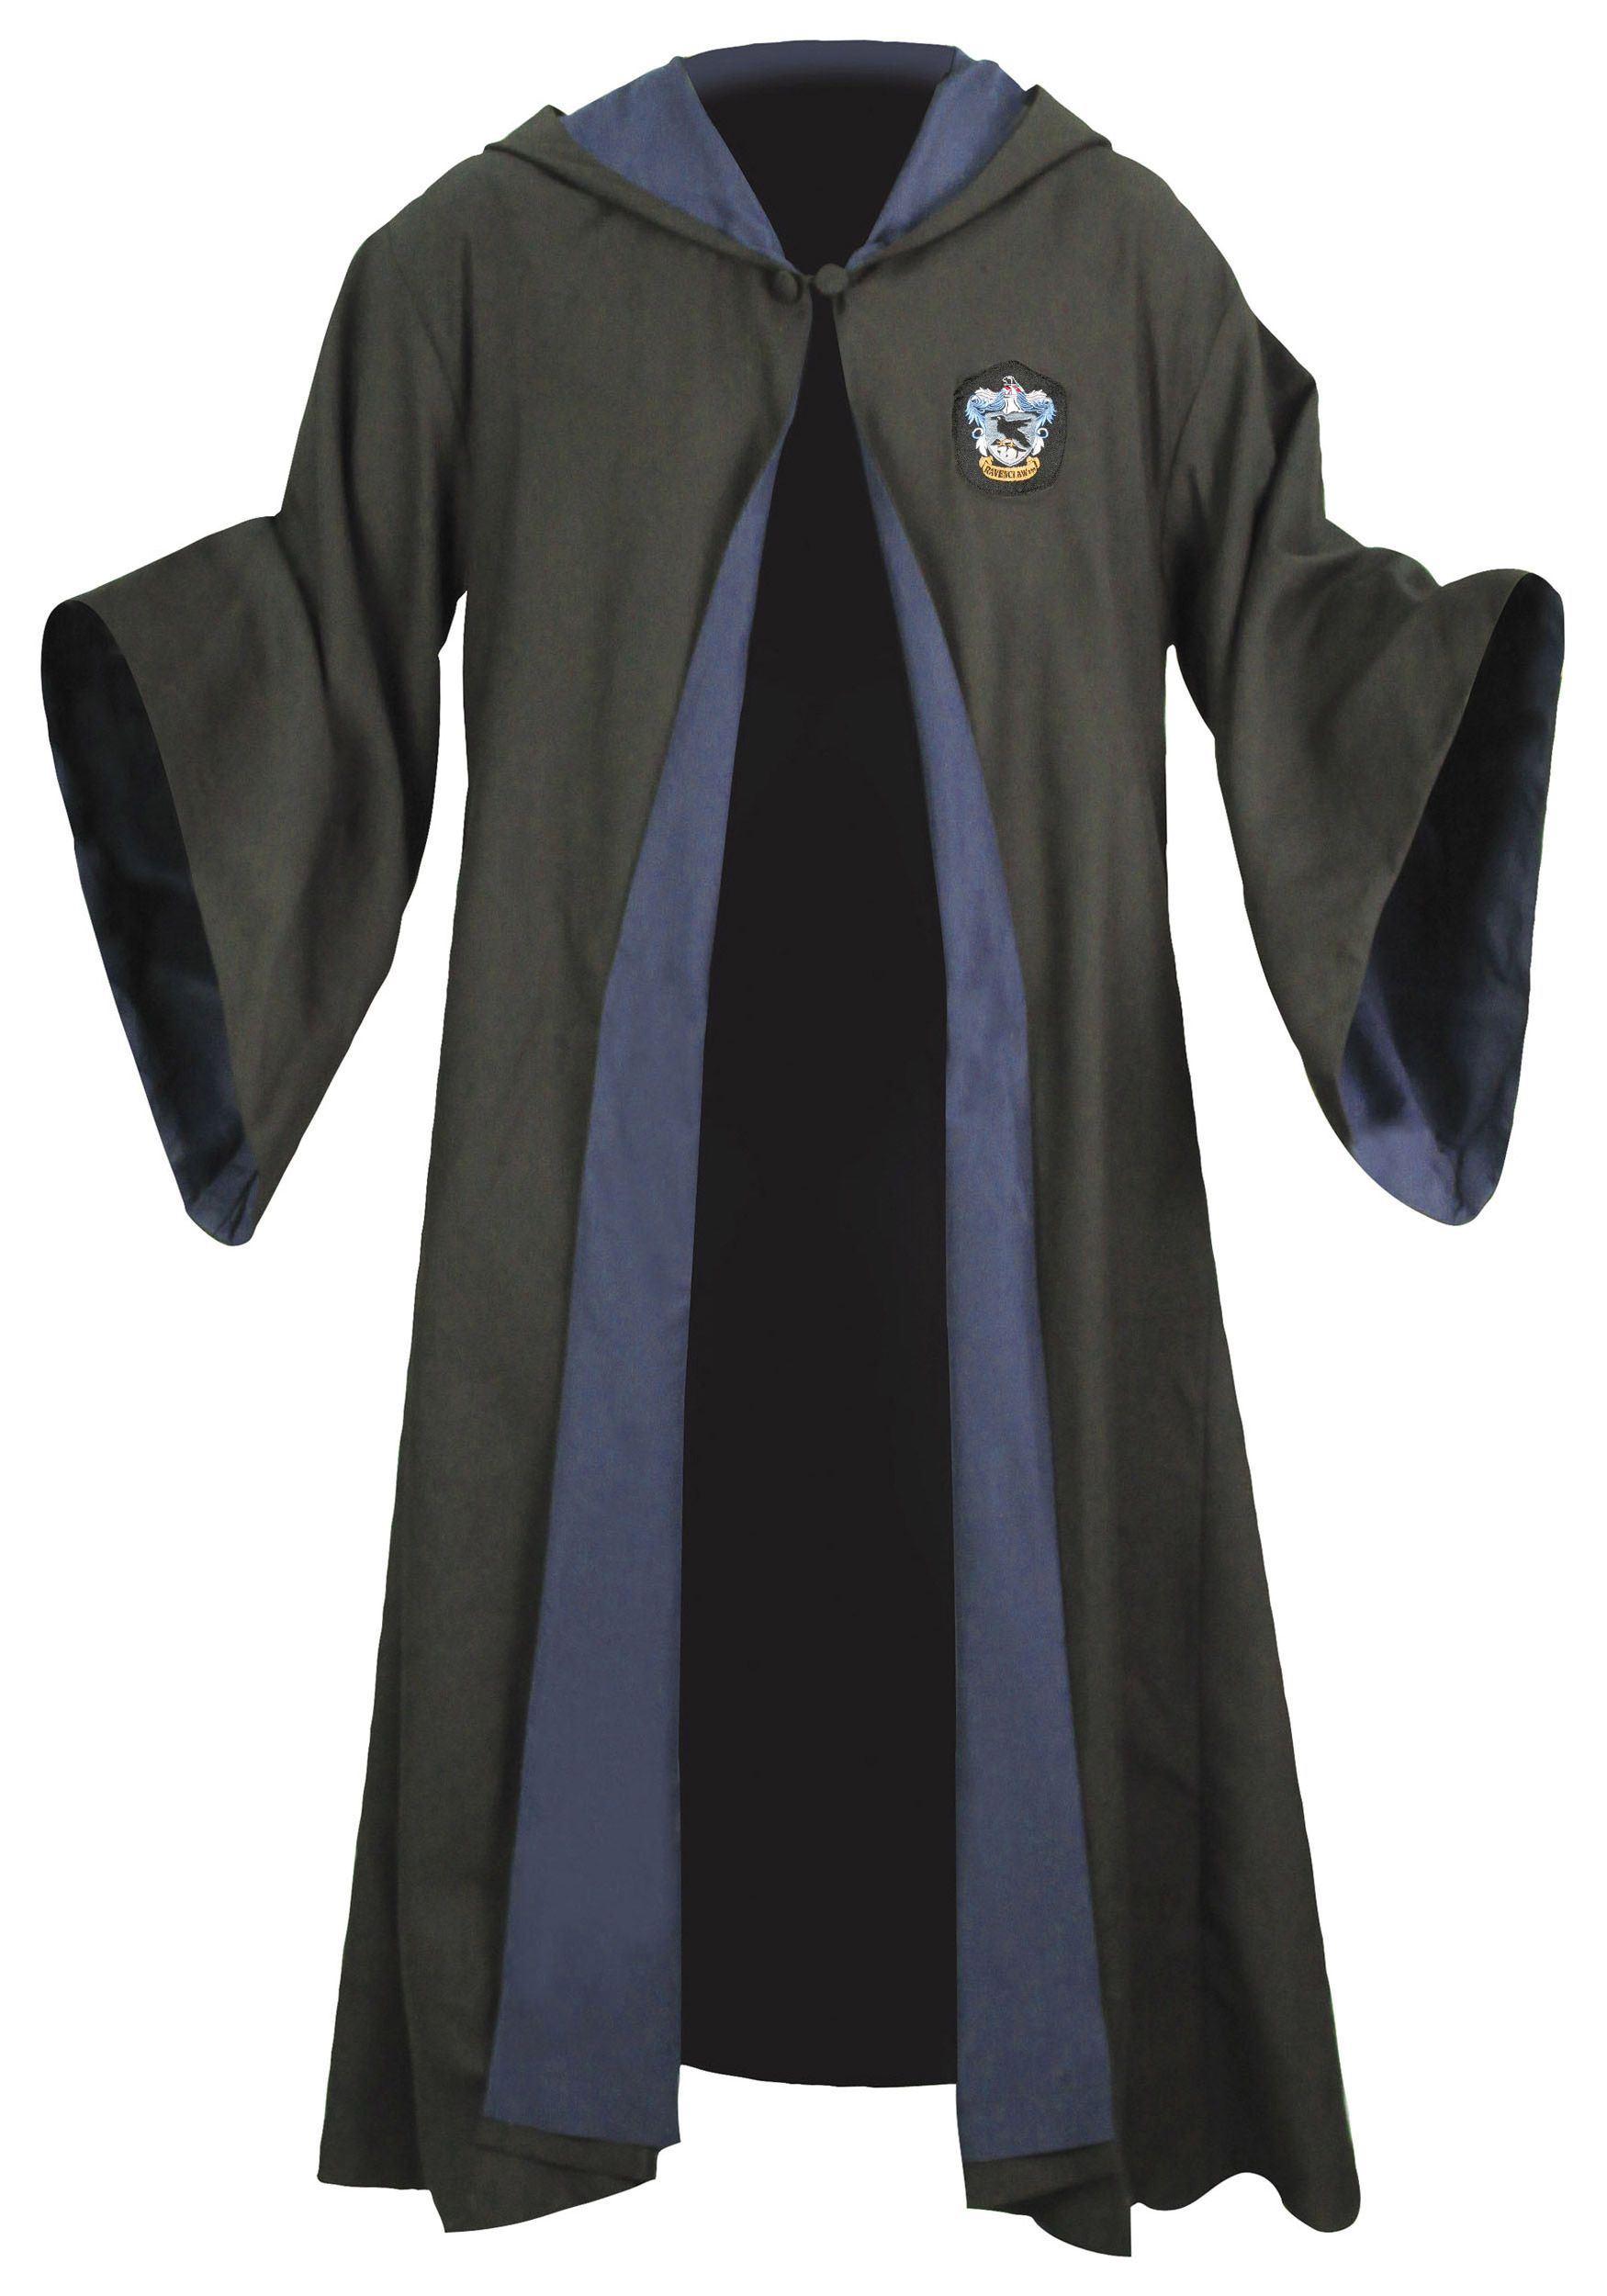 00c319d22df4f Details about Harry Potter Gryffindor Slytherin Youth Robe Cloak ...